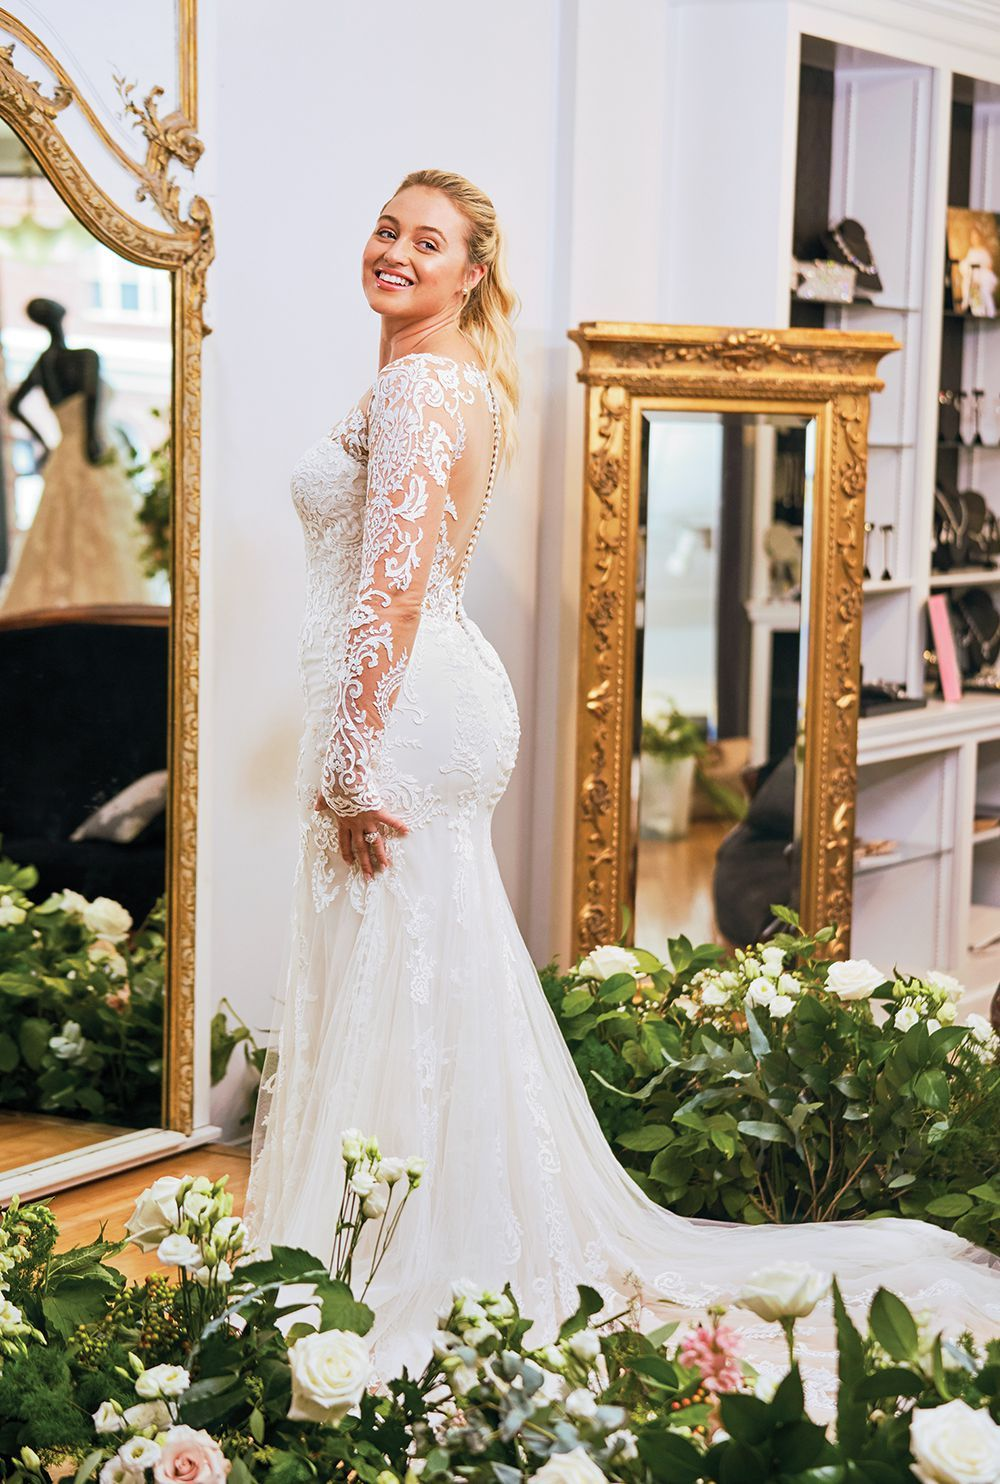 019ced11d485 Style 88049: Allover Lace Illusion Long Sleeve Fit and Flare Gown | Justin  Alexander